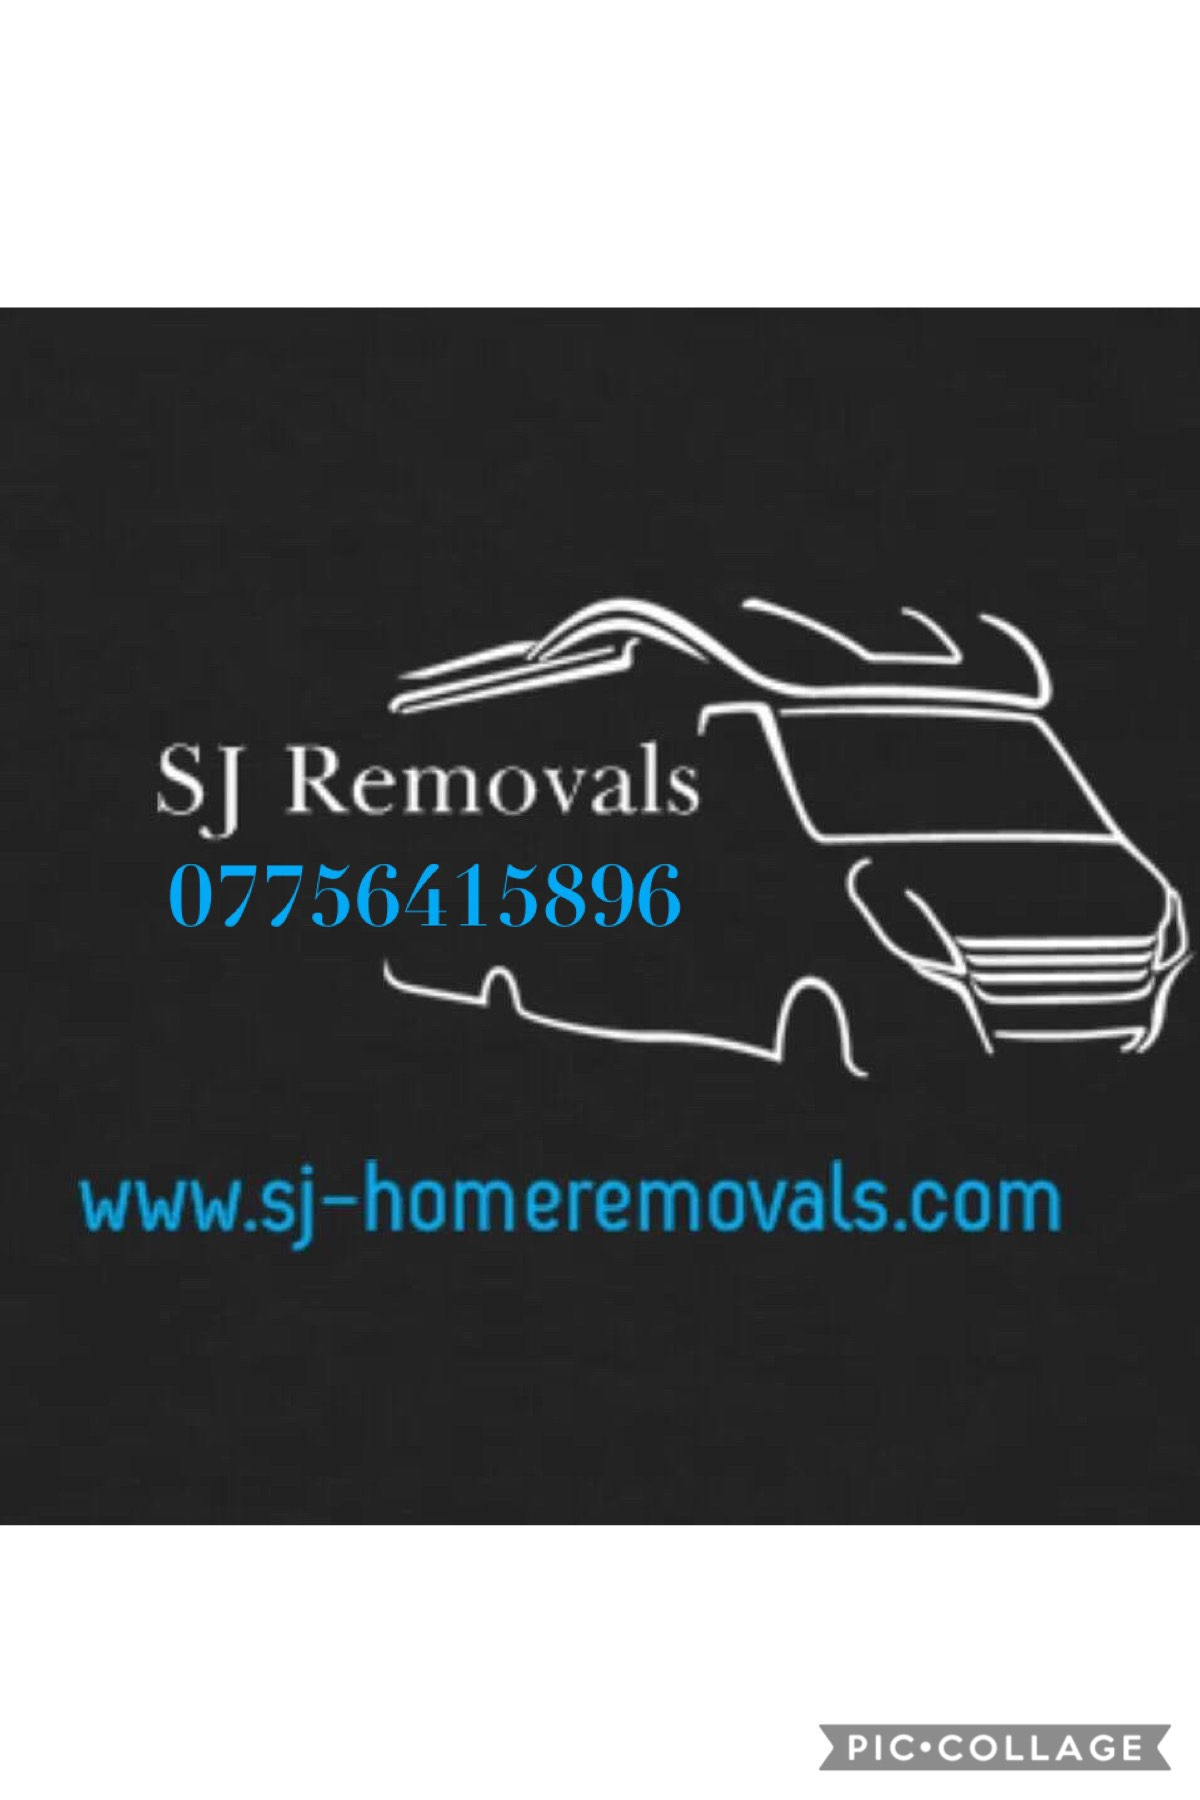 SJ Removals online booking